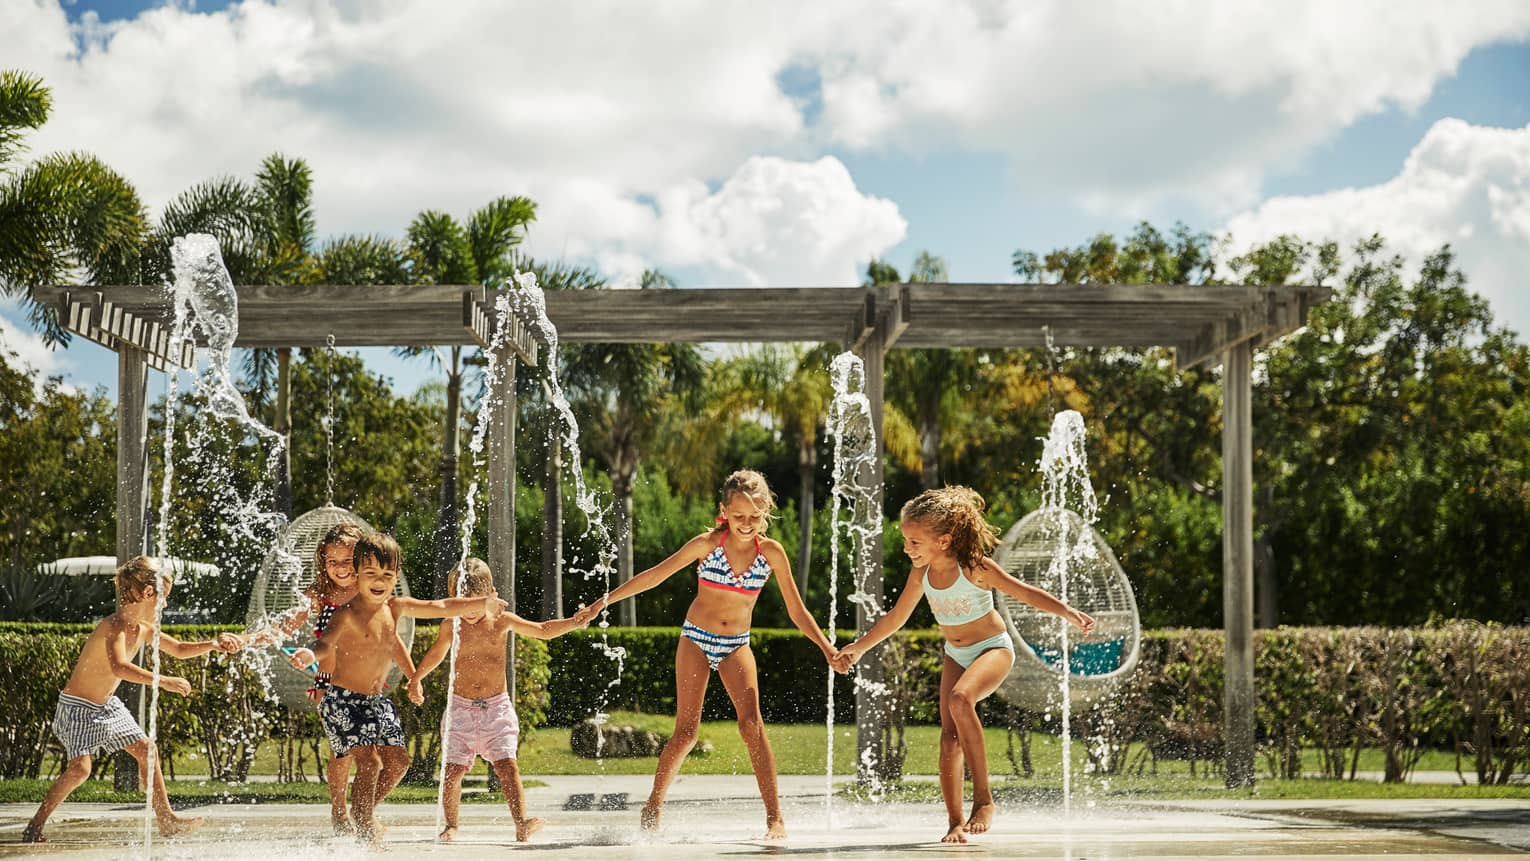 Group of young children in swimsuits runs across outdoor splash pad with fountains